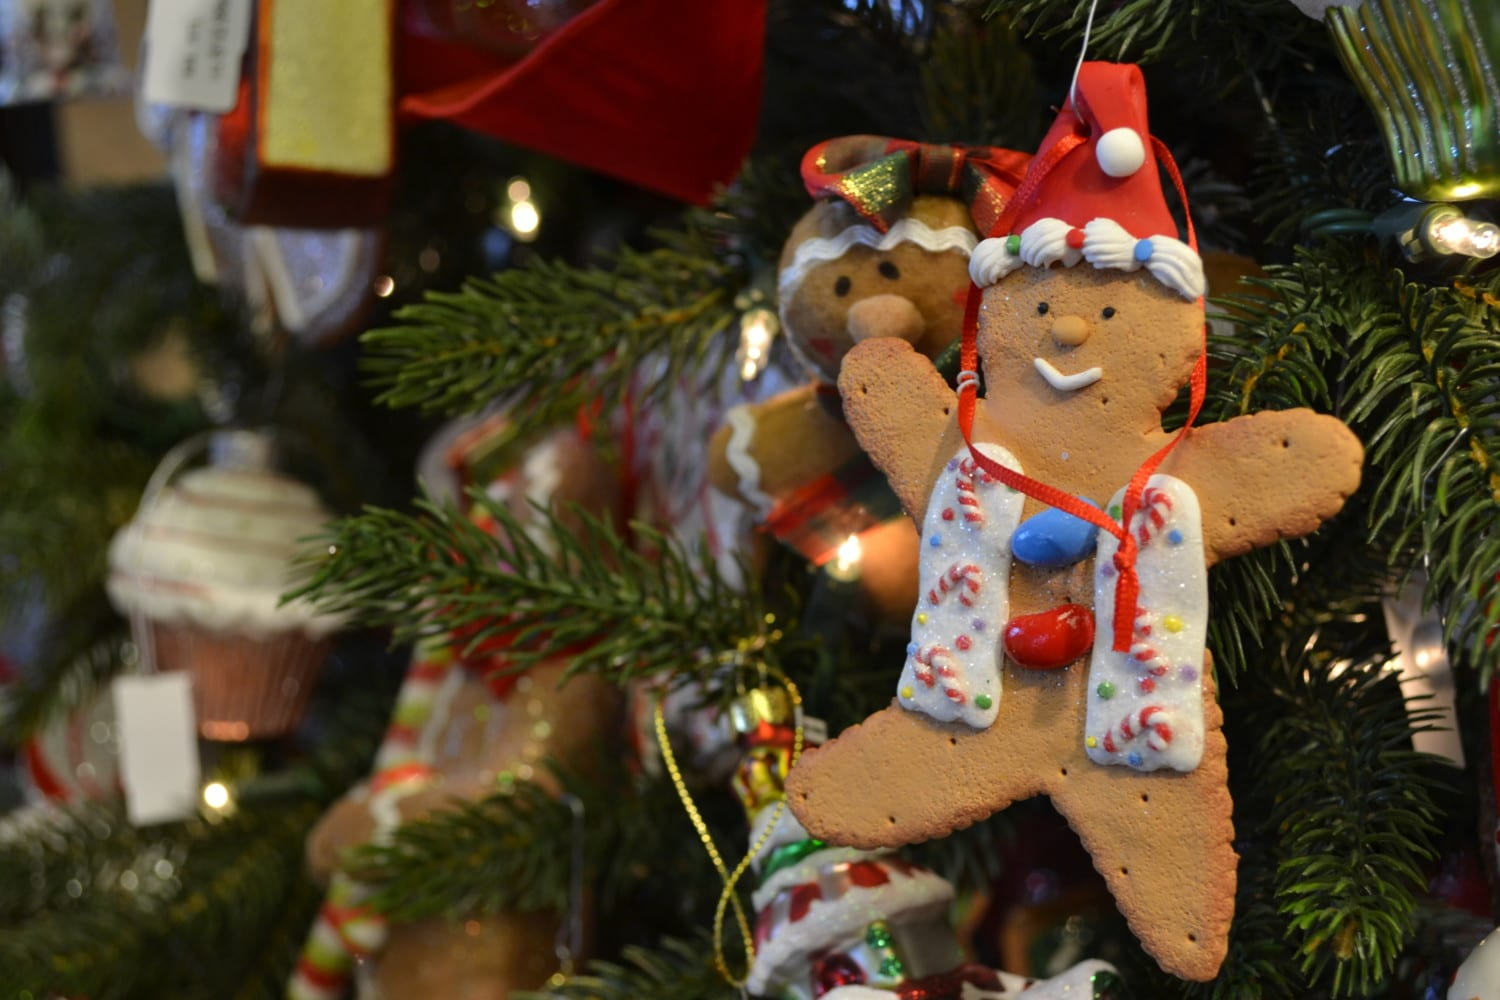 gingerbread man ornament photo